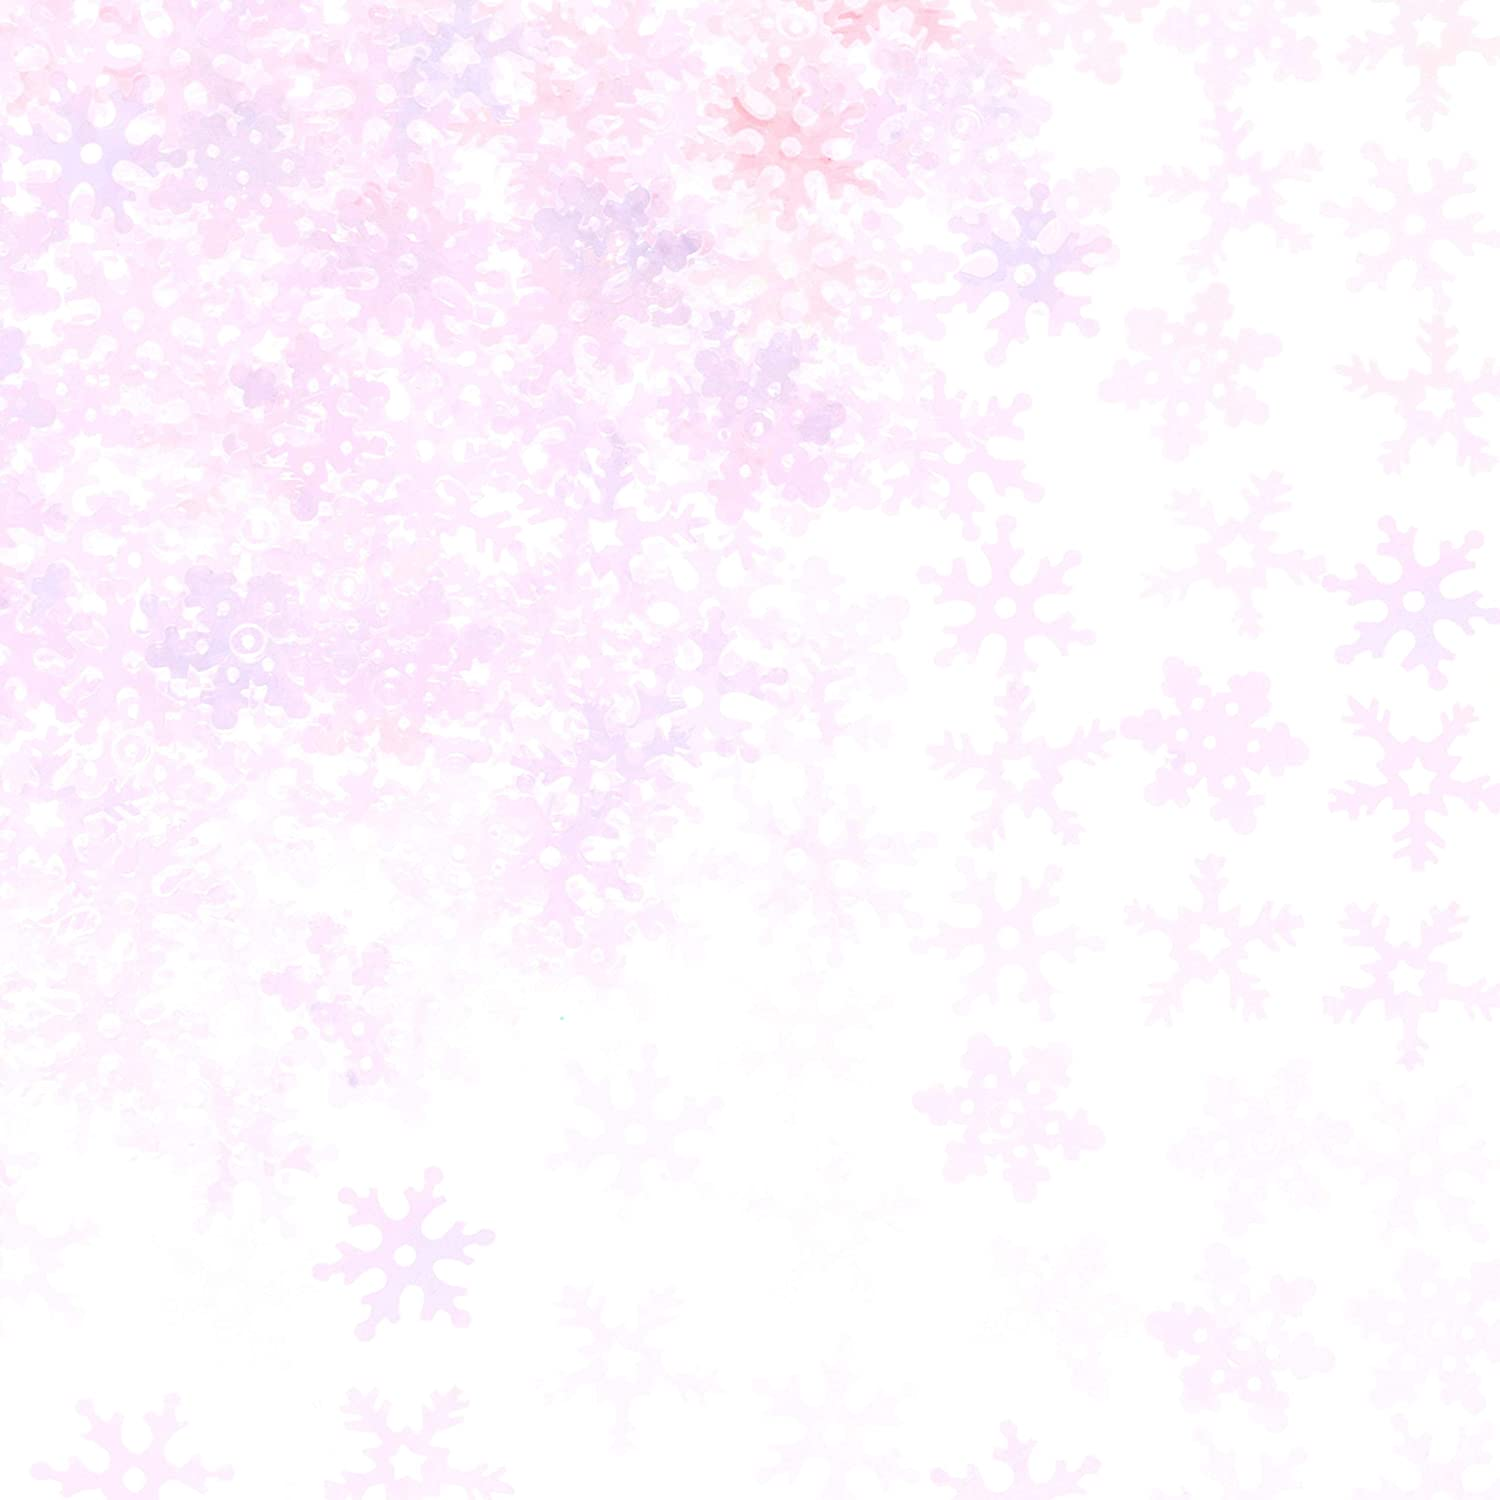 Iridescent Snowflakes Frozen Party Confetti - Winter Wonderland Birthday Baby Shower Wedding Foil Metallic Sequins Table Confetti Christmas Party Sprinkles Confetti Decorations, 60g